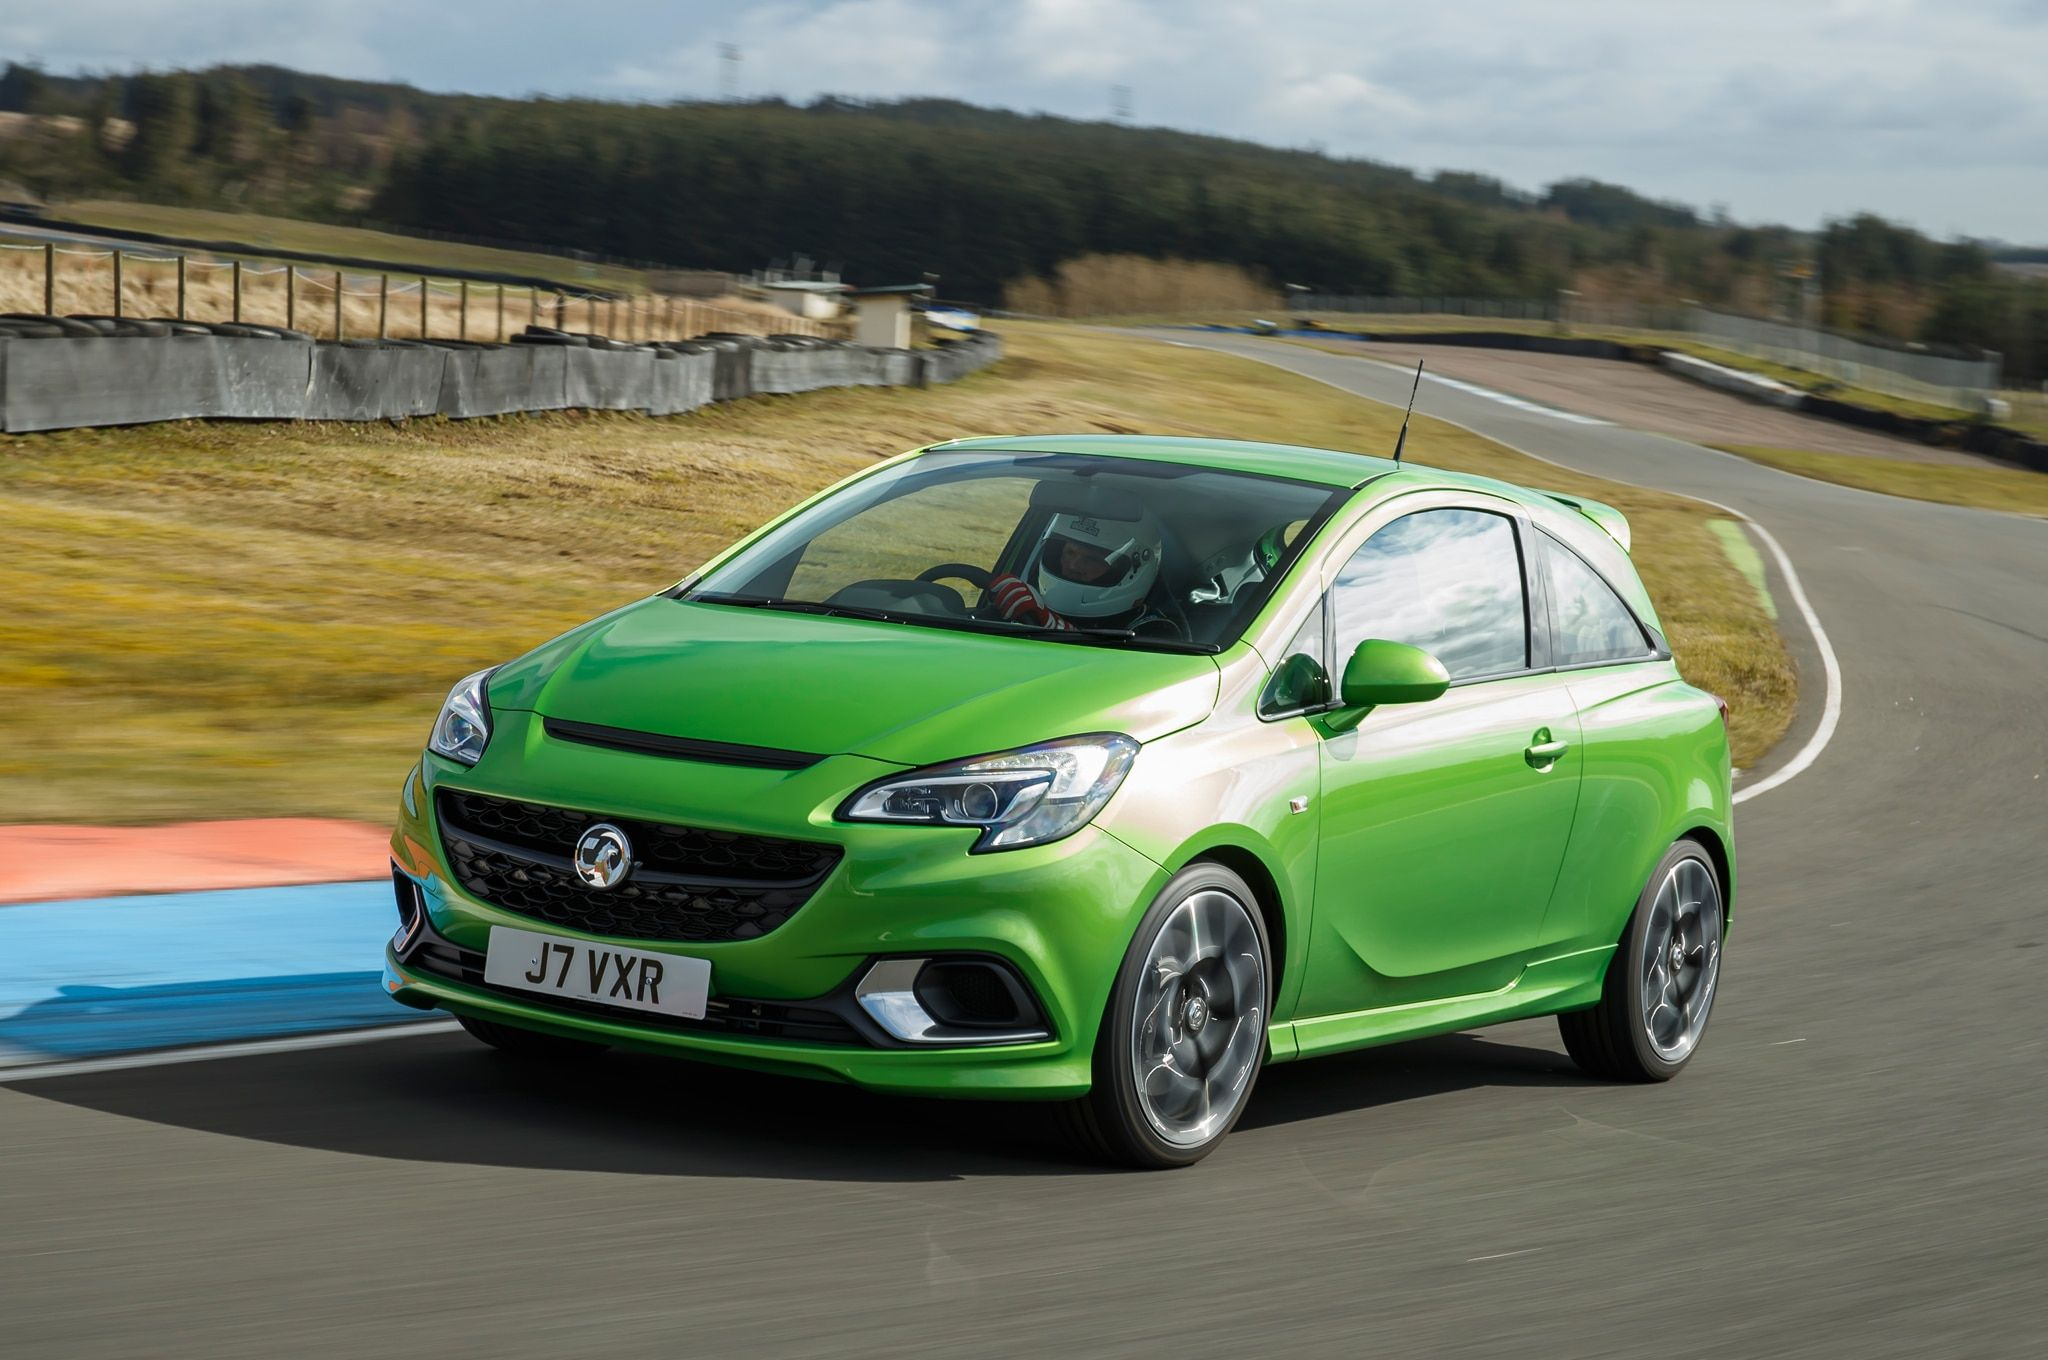 63 The 2020 Vauxhall Corsa VXR Research New